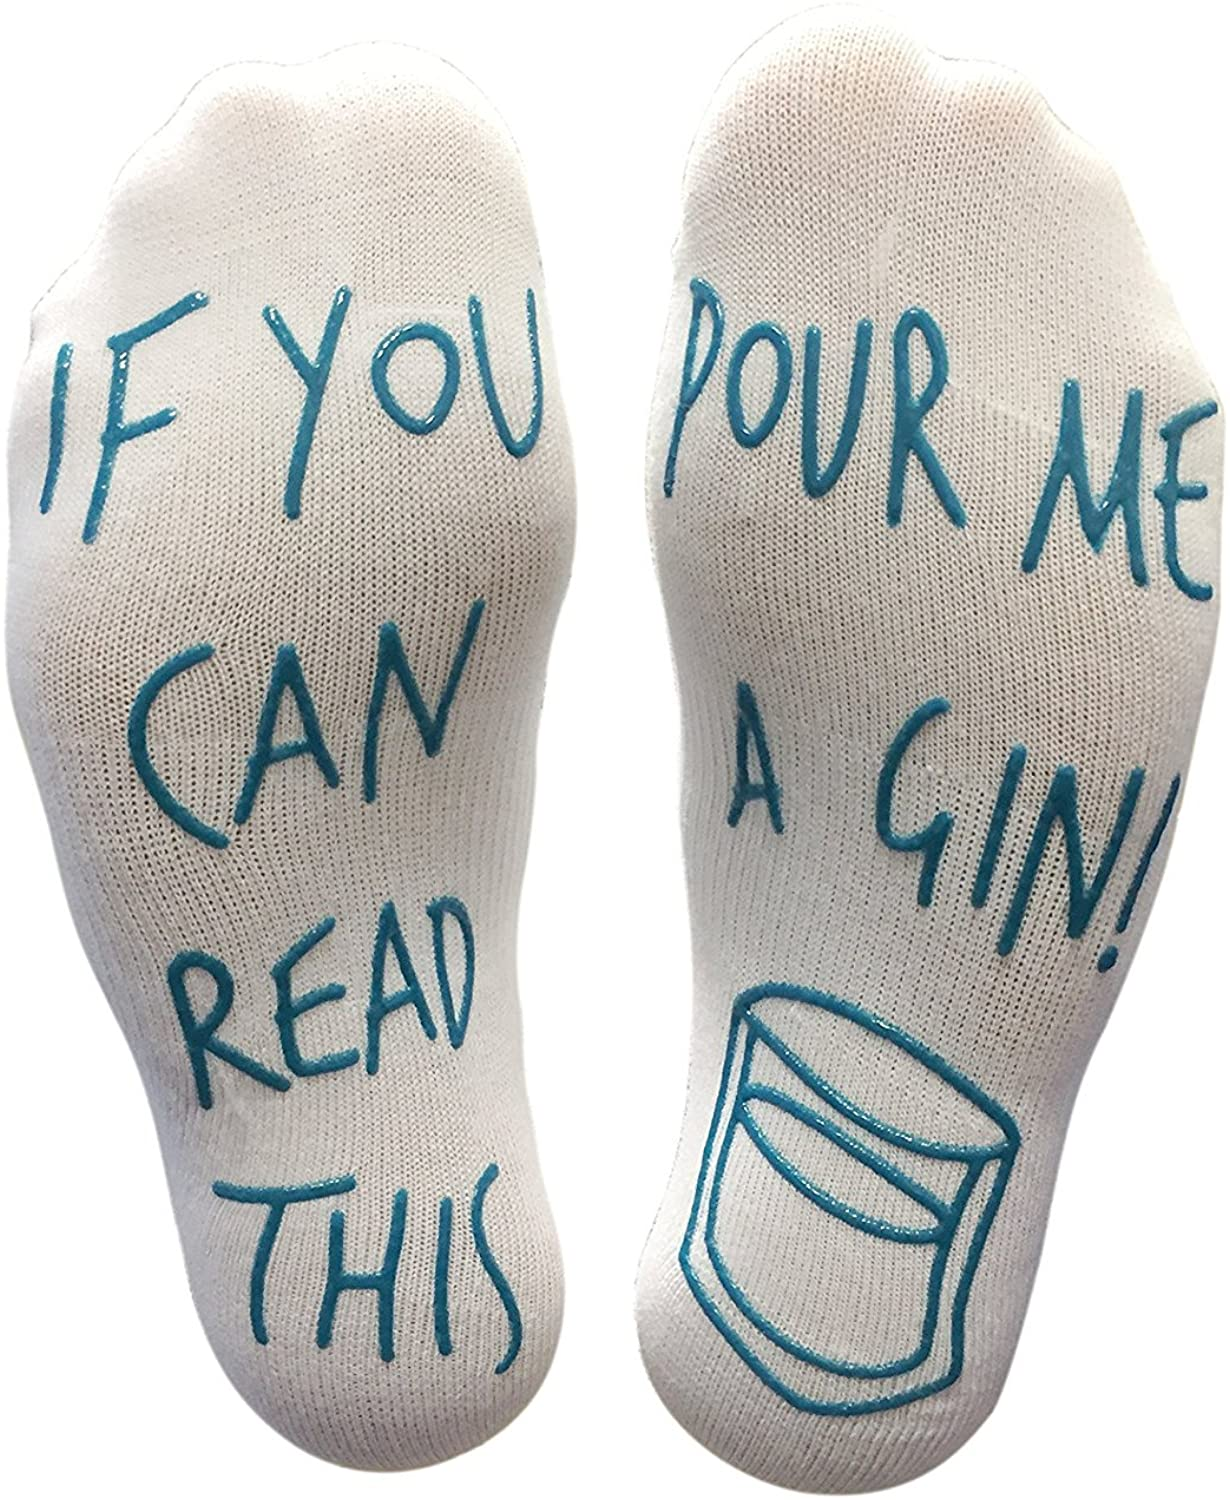 'If You Can Read This Pour Me A Gin' Funny Socks - Perfect Joke Novelty Gift For Men & Women